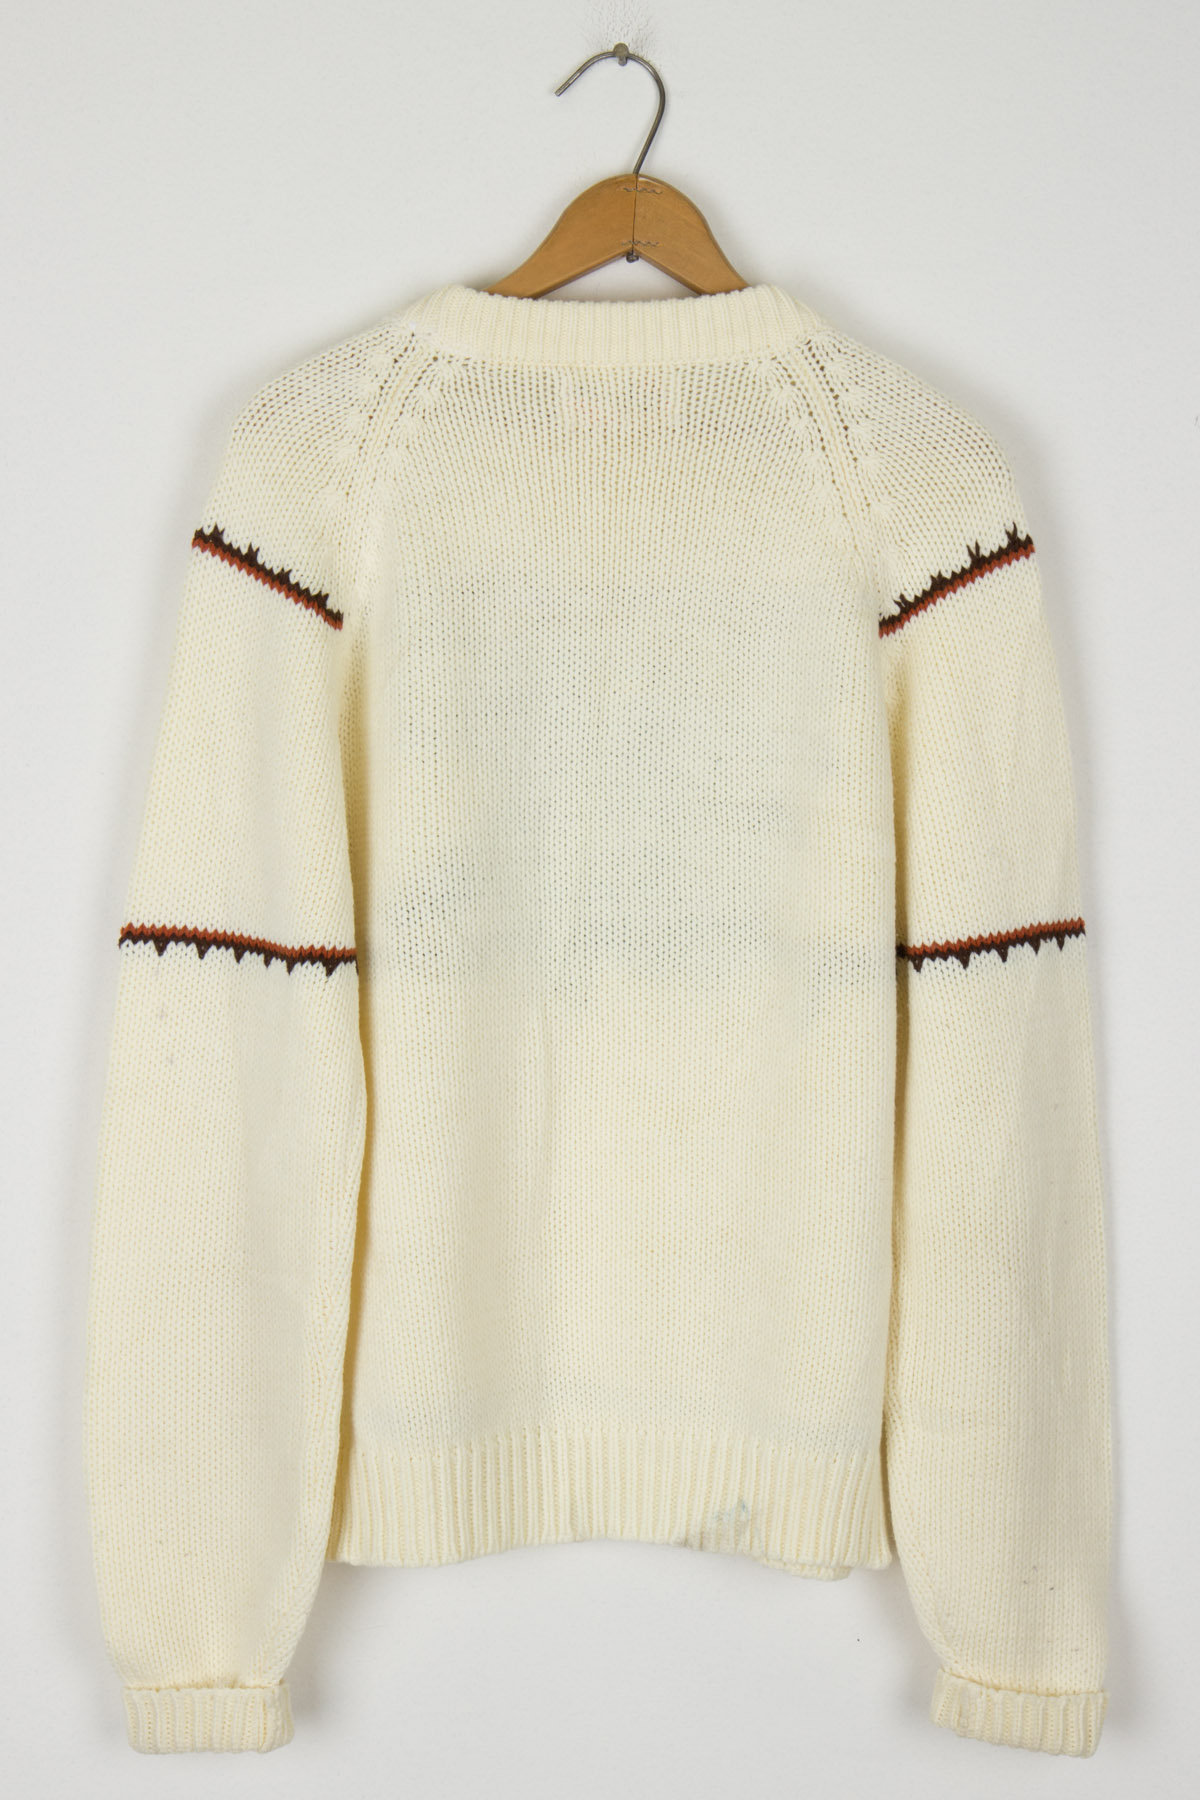 Sleigh Knit Sweater